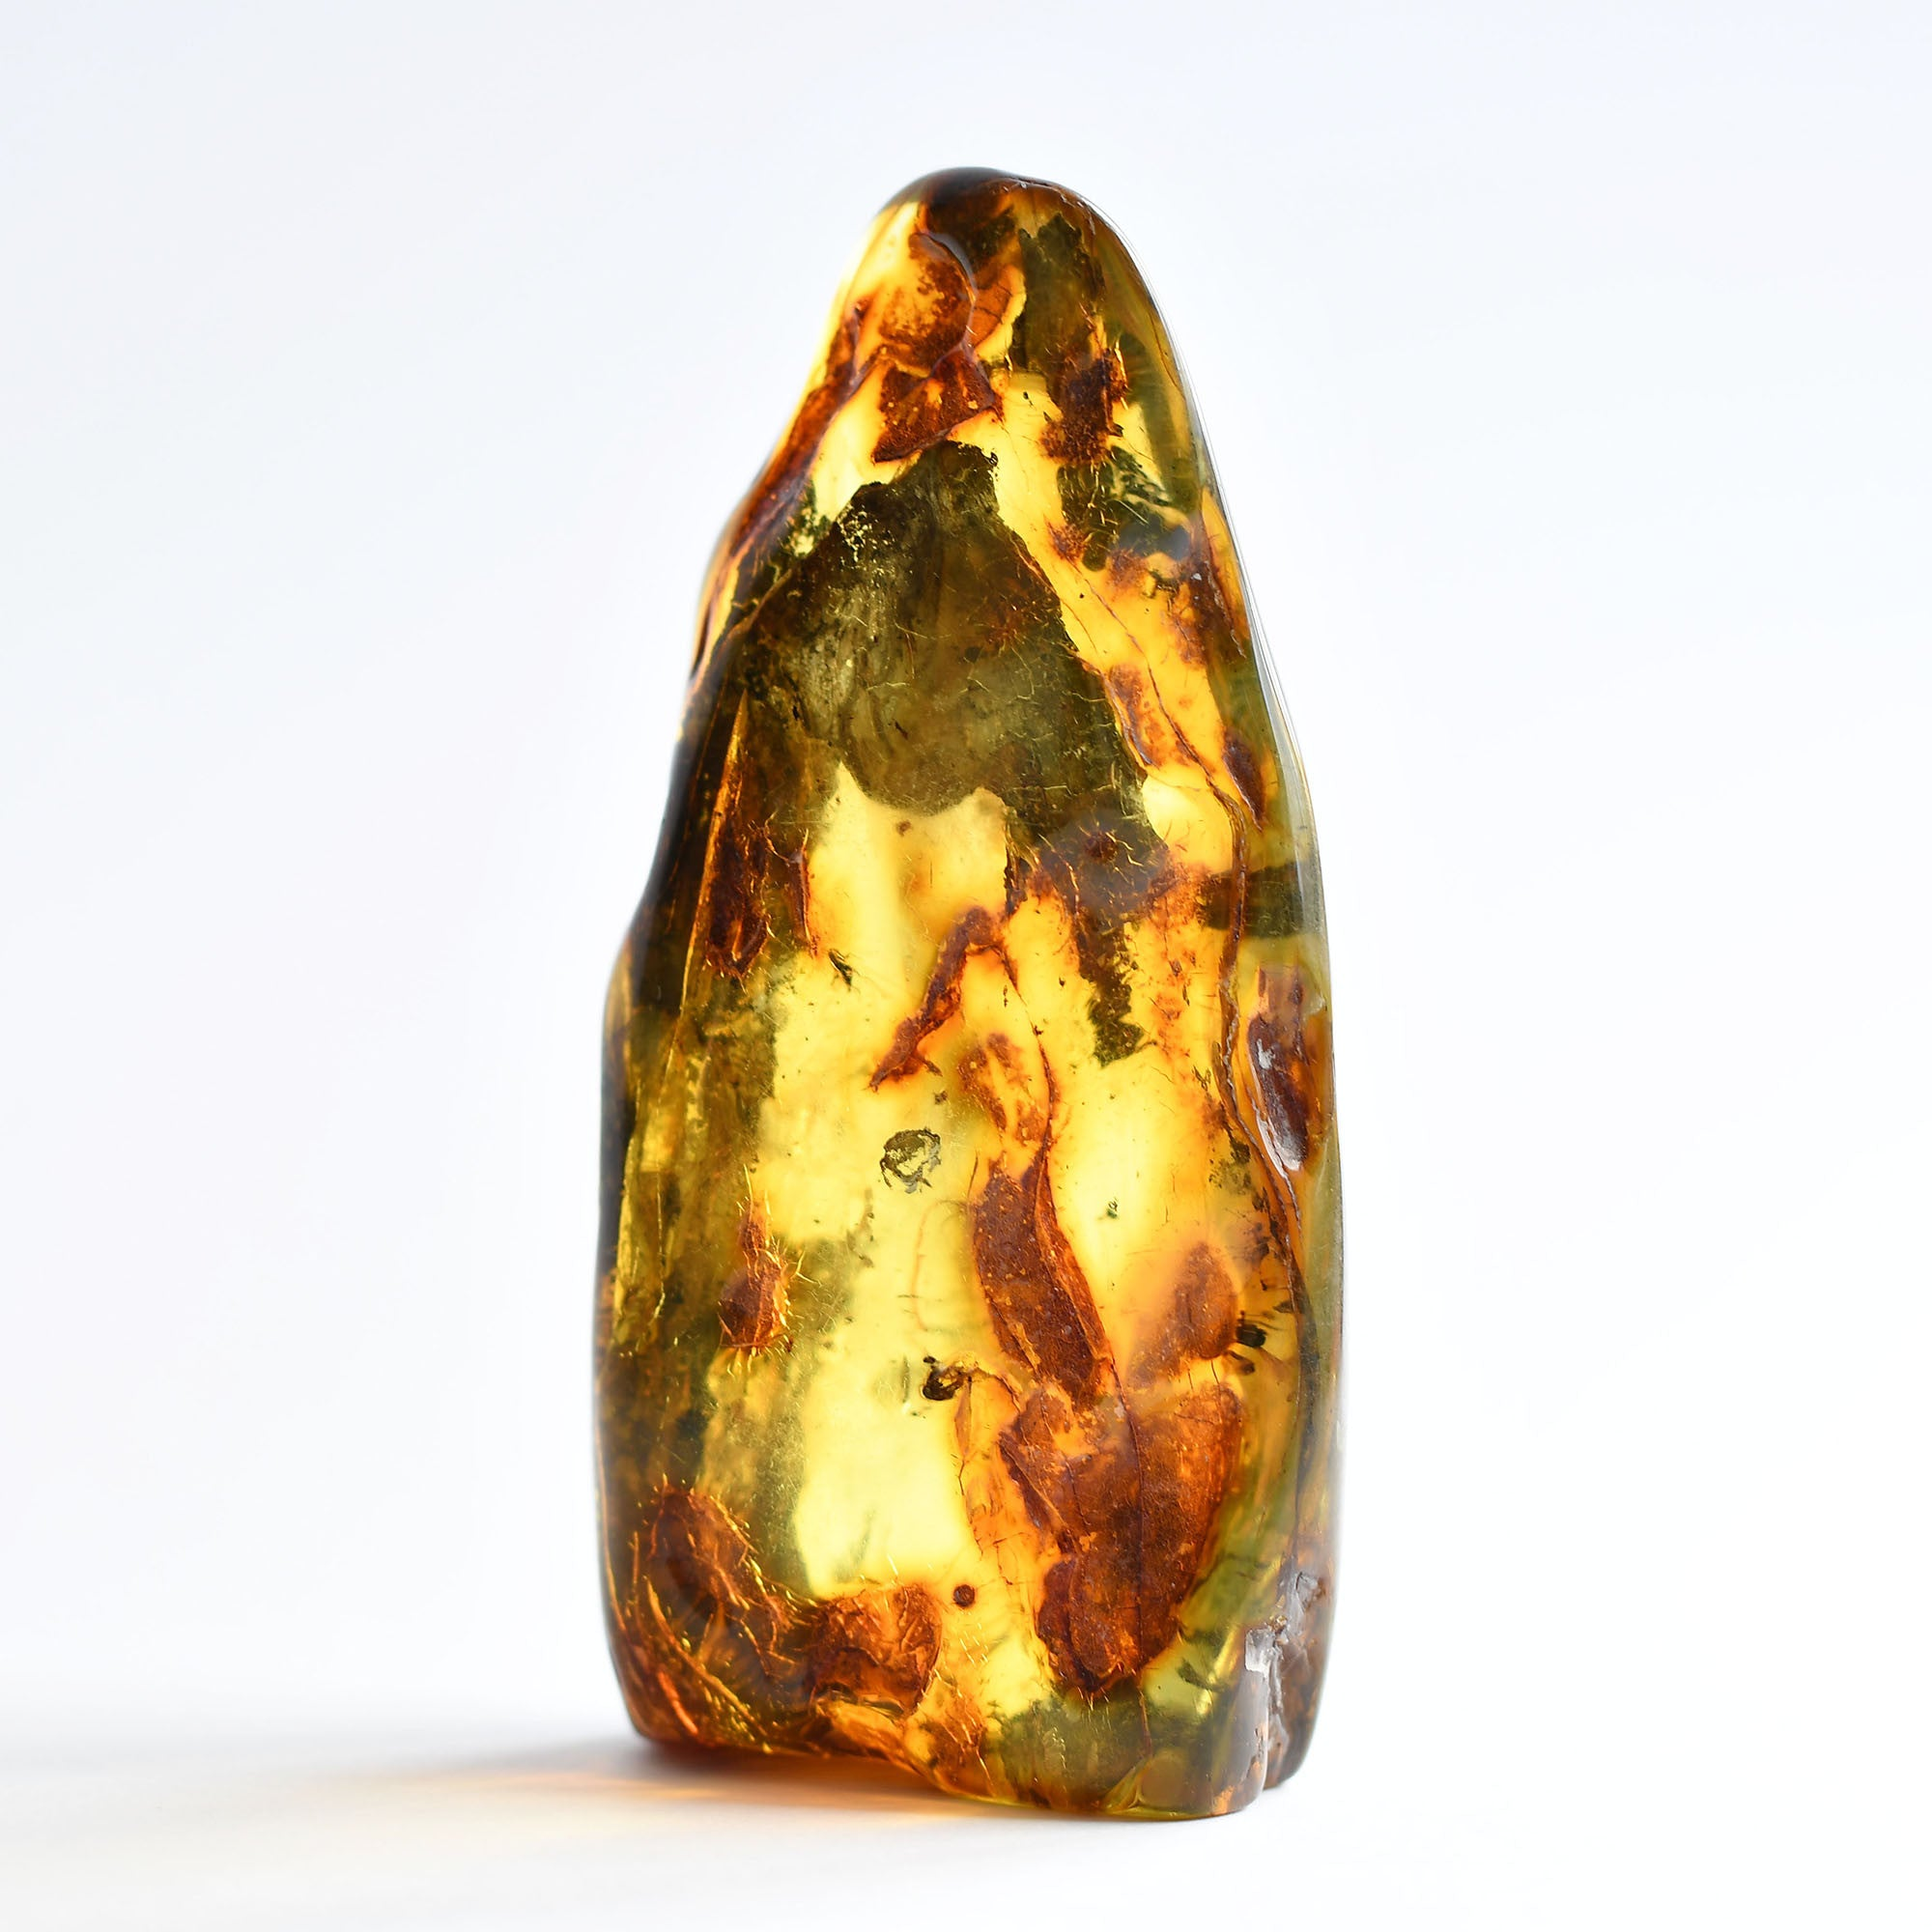 Transparent amber with an insect